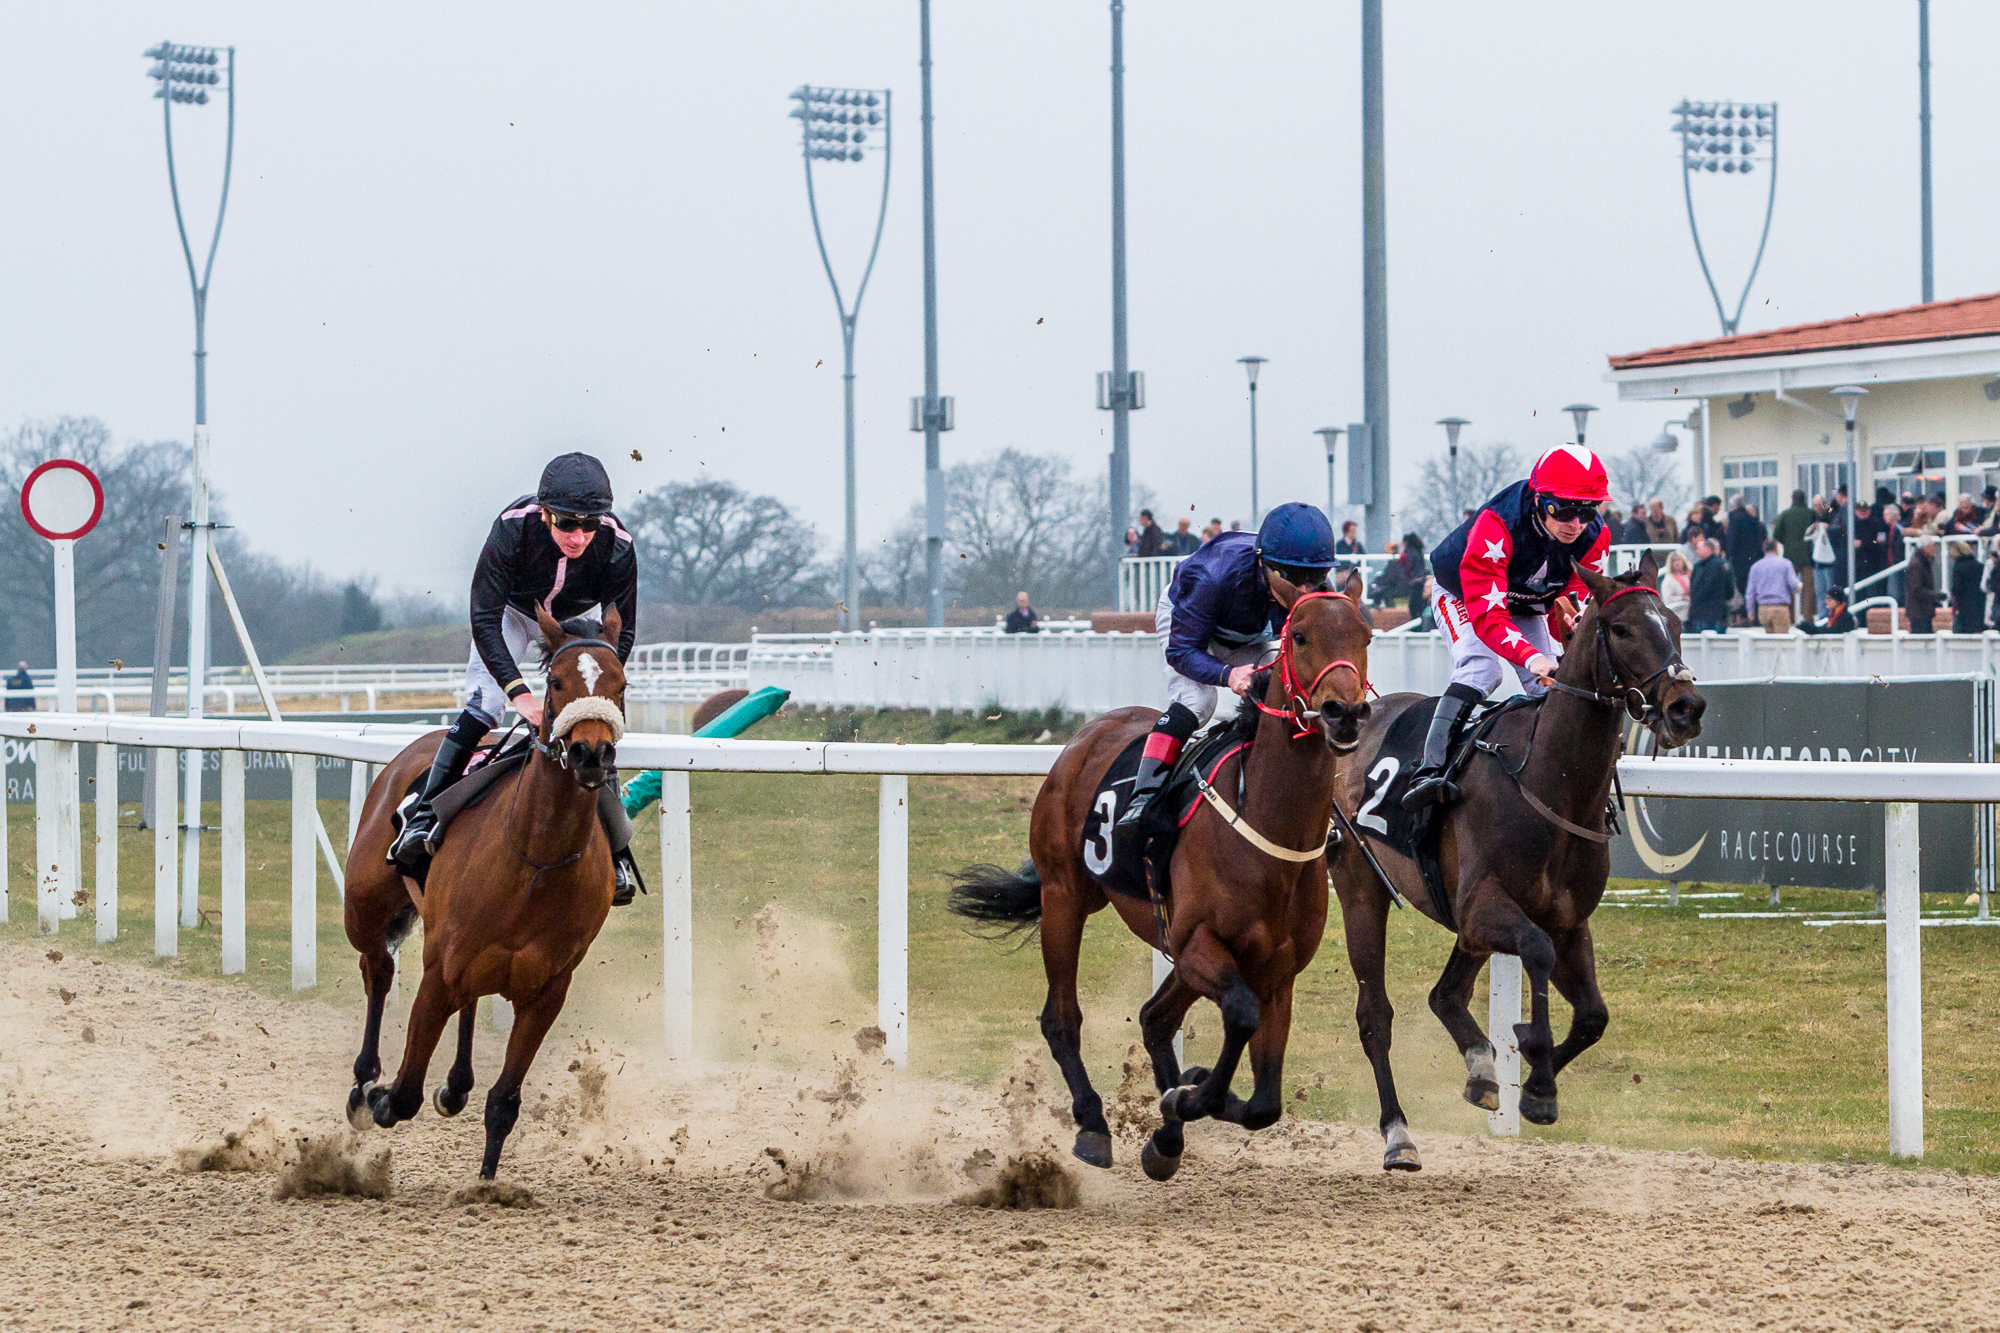 Chelmsford-city-racecourse (1 of 1)